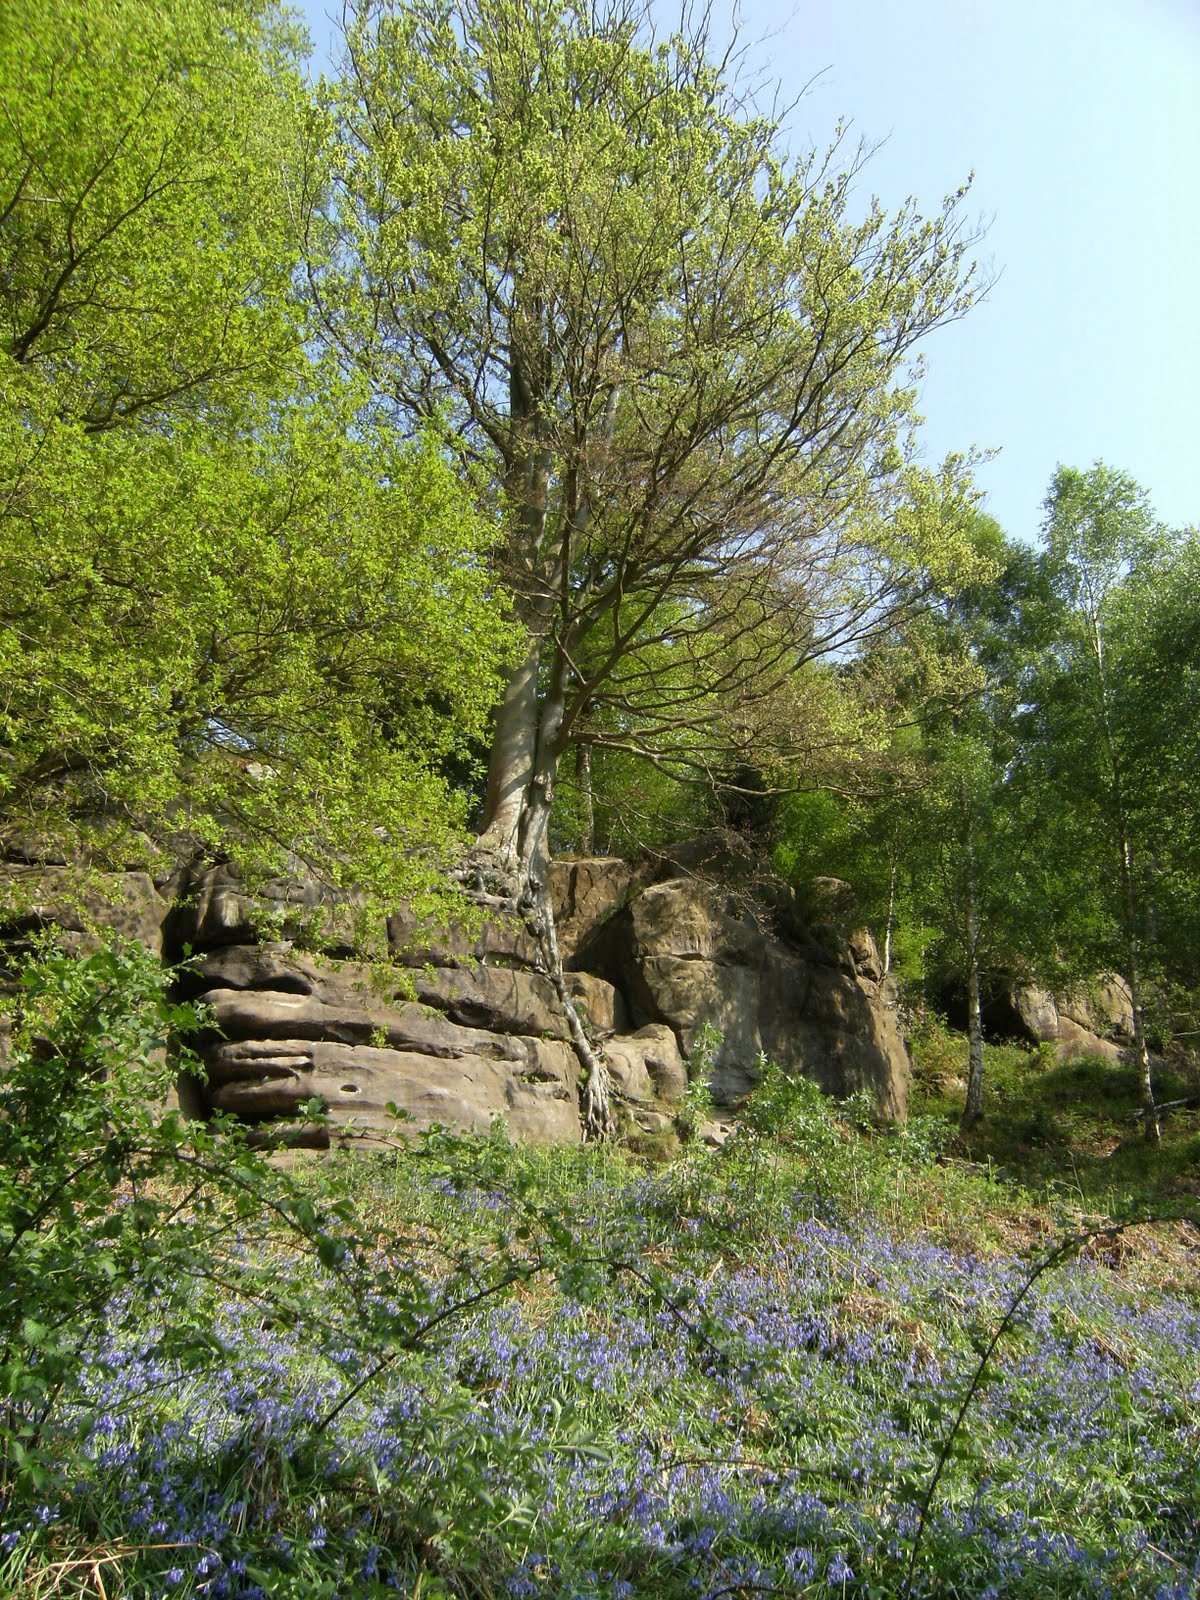 DSCF7489 Bluebells at Harrison's Rocks